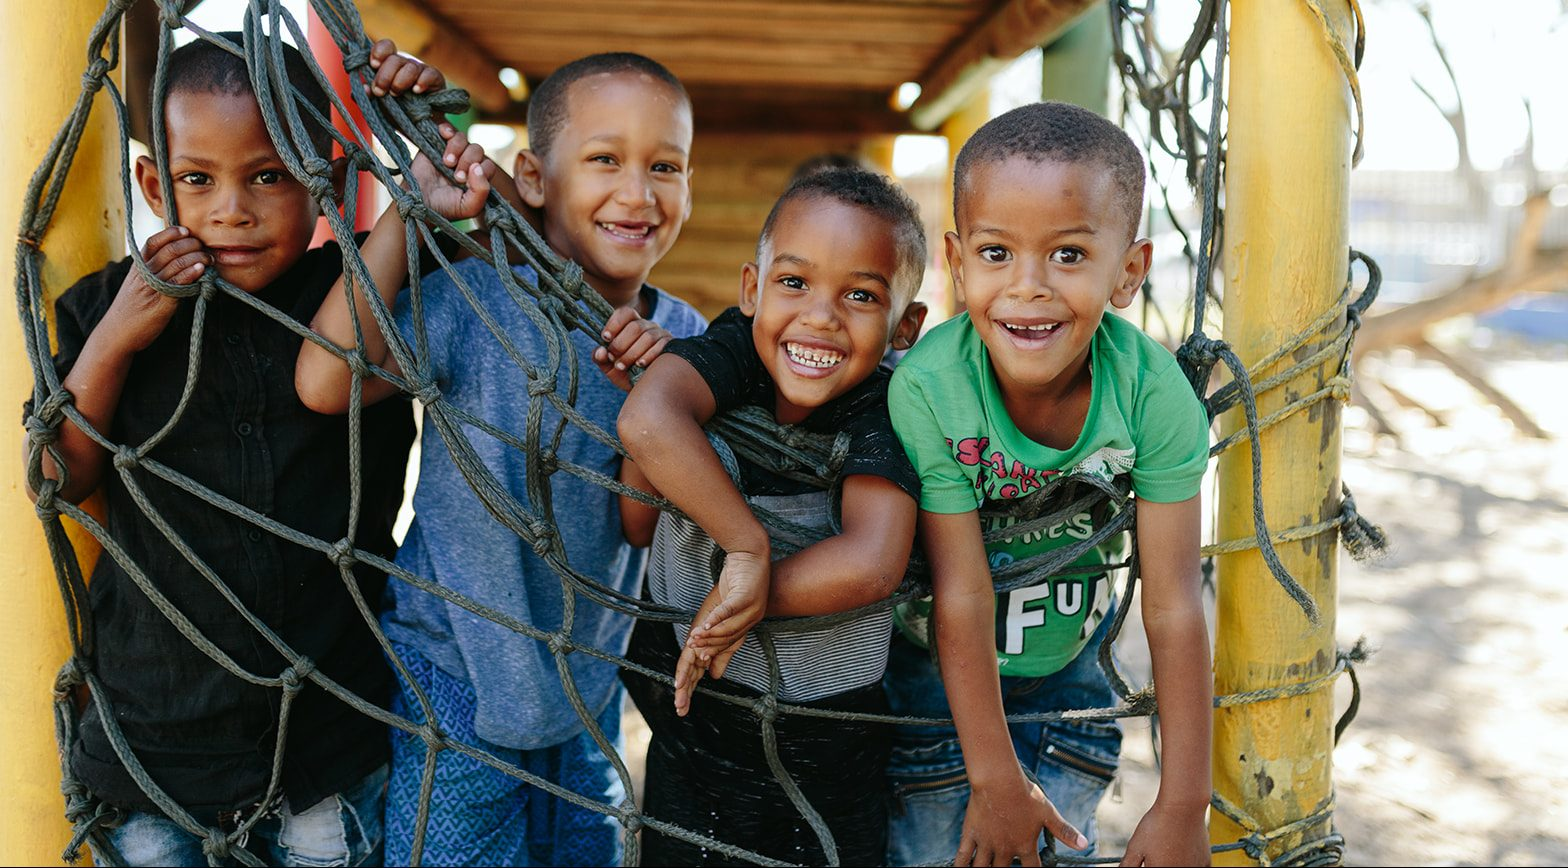 Four young boys hanging on a jungle gym